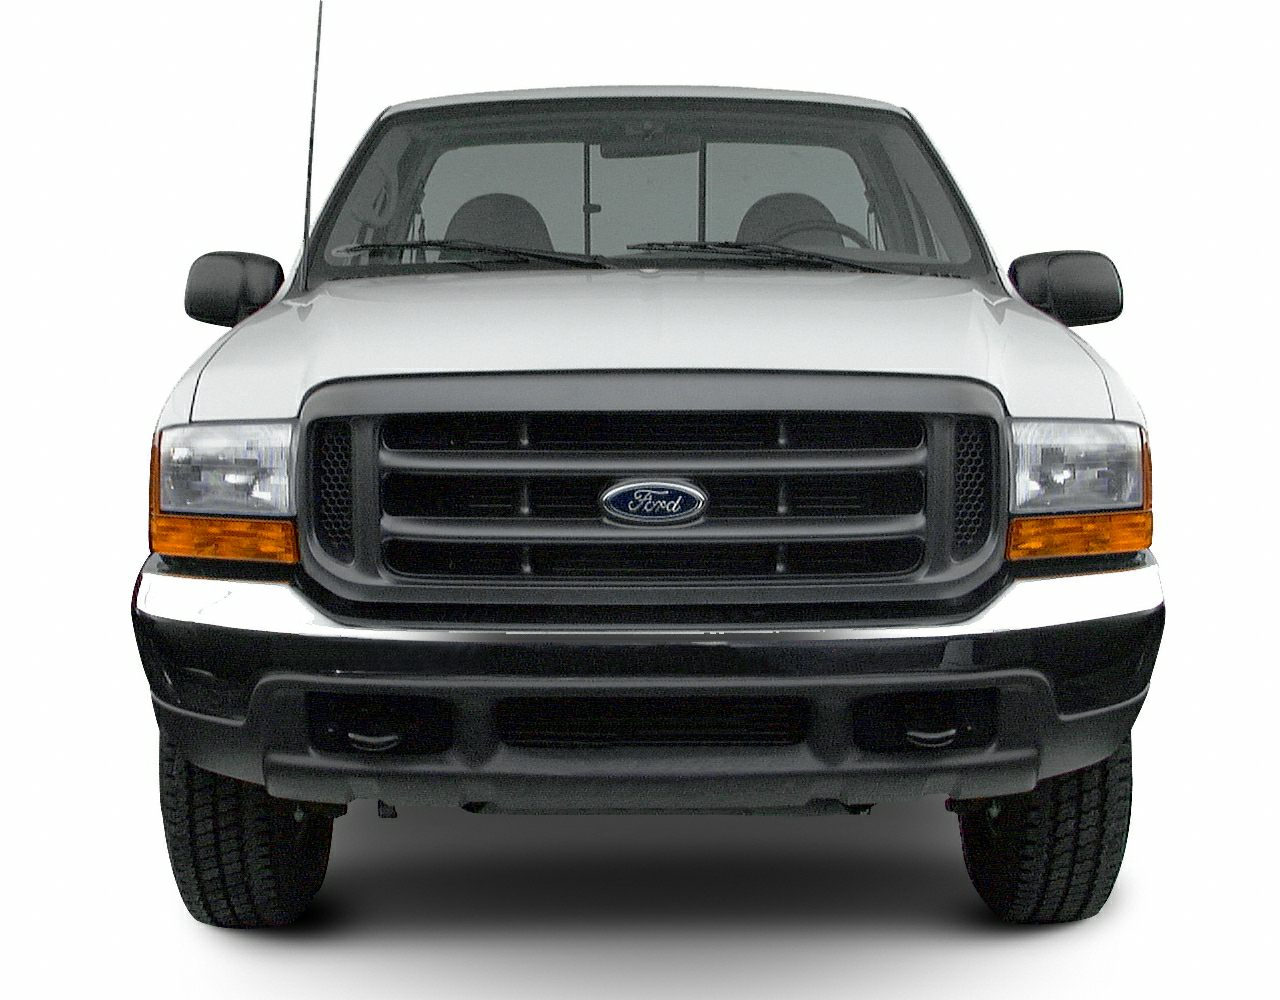 2000 ford f 350 xl 4x4 sd regular cab 137 in wb srw hd pictures. Black Bedroom Furniture Sets. Home Design Ideas